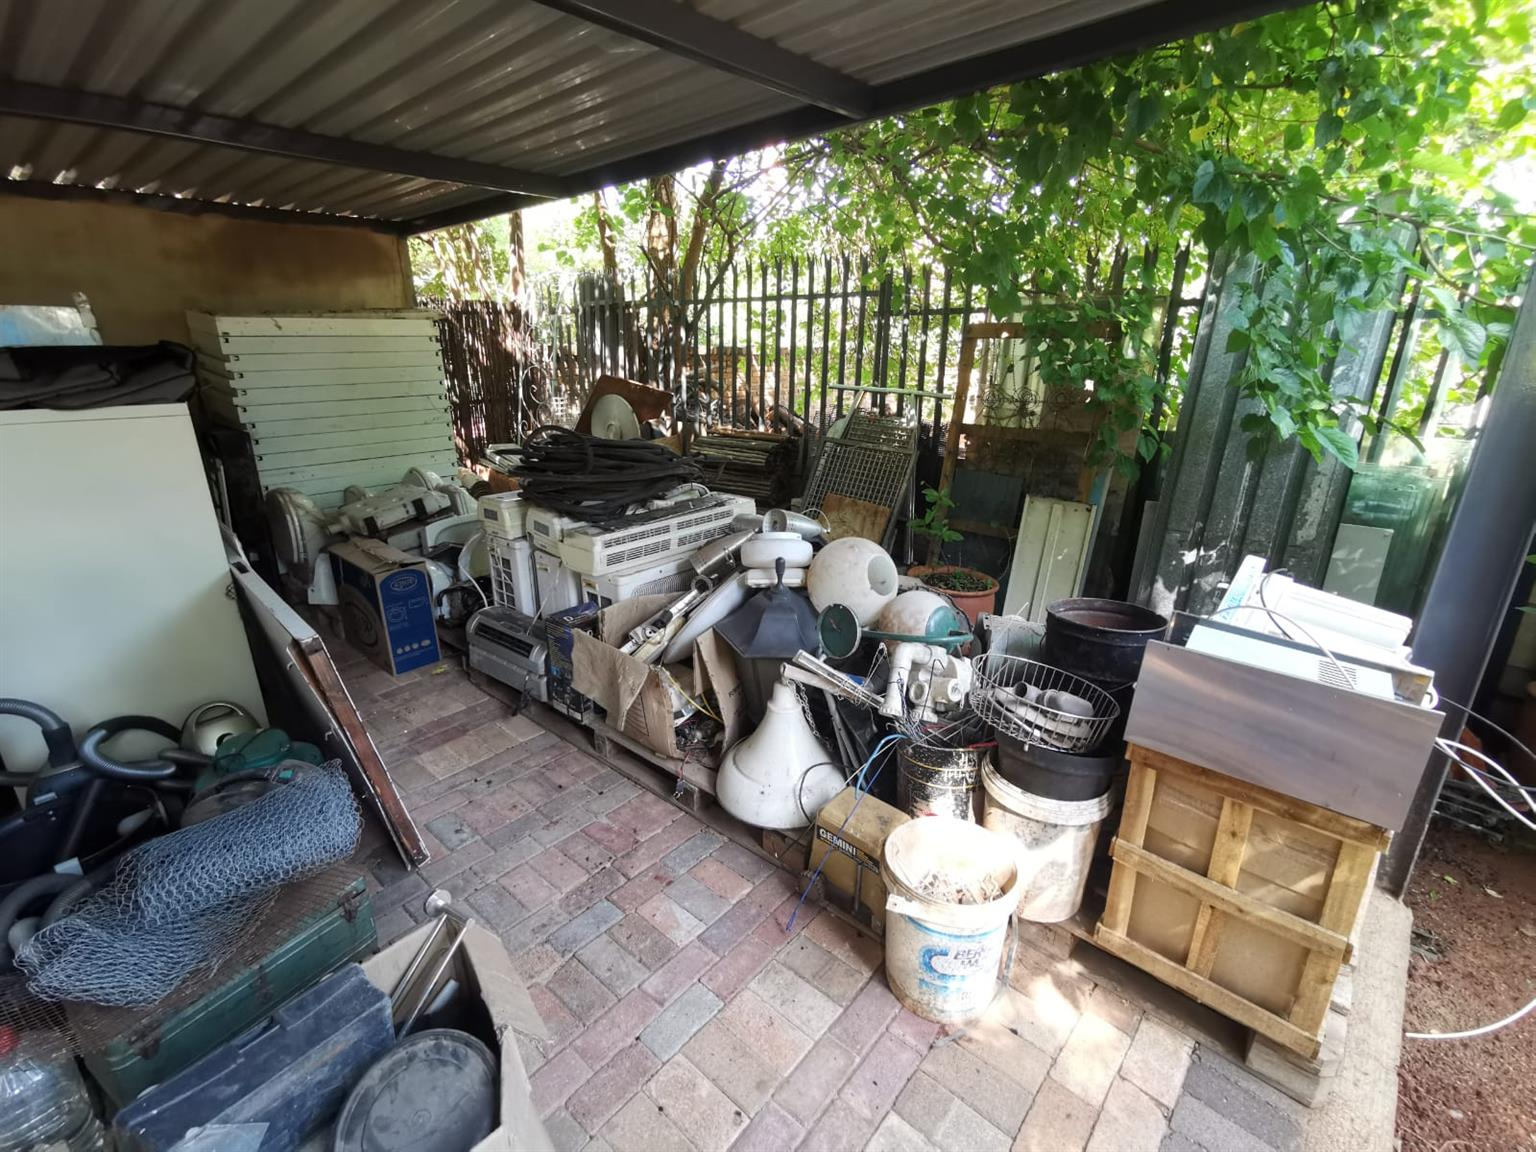 Various secondhand building materials - Baths, toilets, windows, doors etc